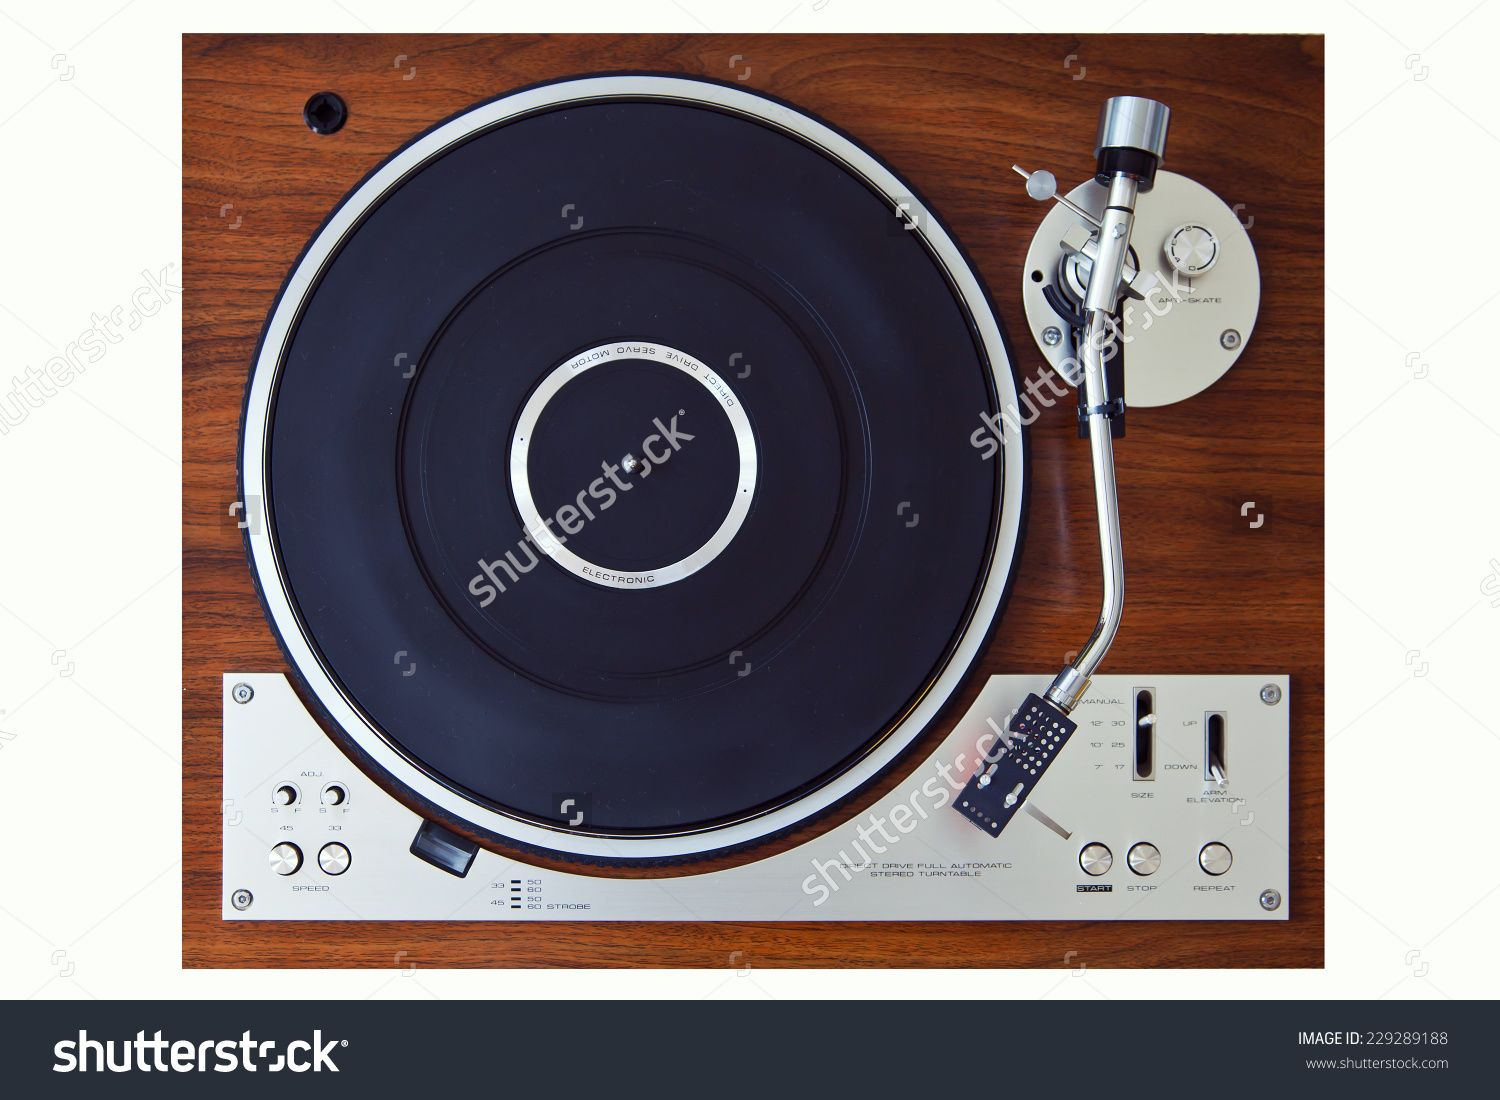 Stereo Turntable Vinyl Record Player Analog Retro Vintage Top View Vinyl Record Player Old Record Player Stereo Turntable